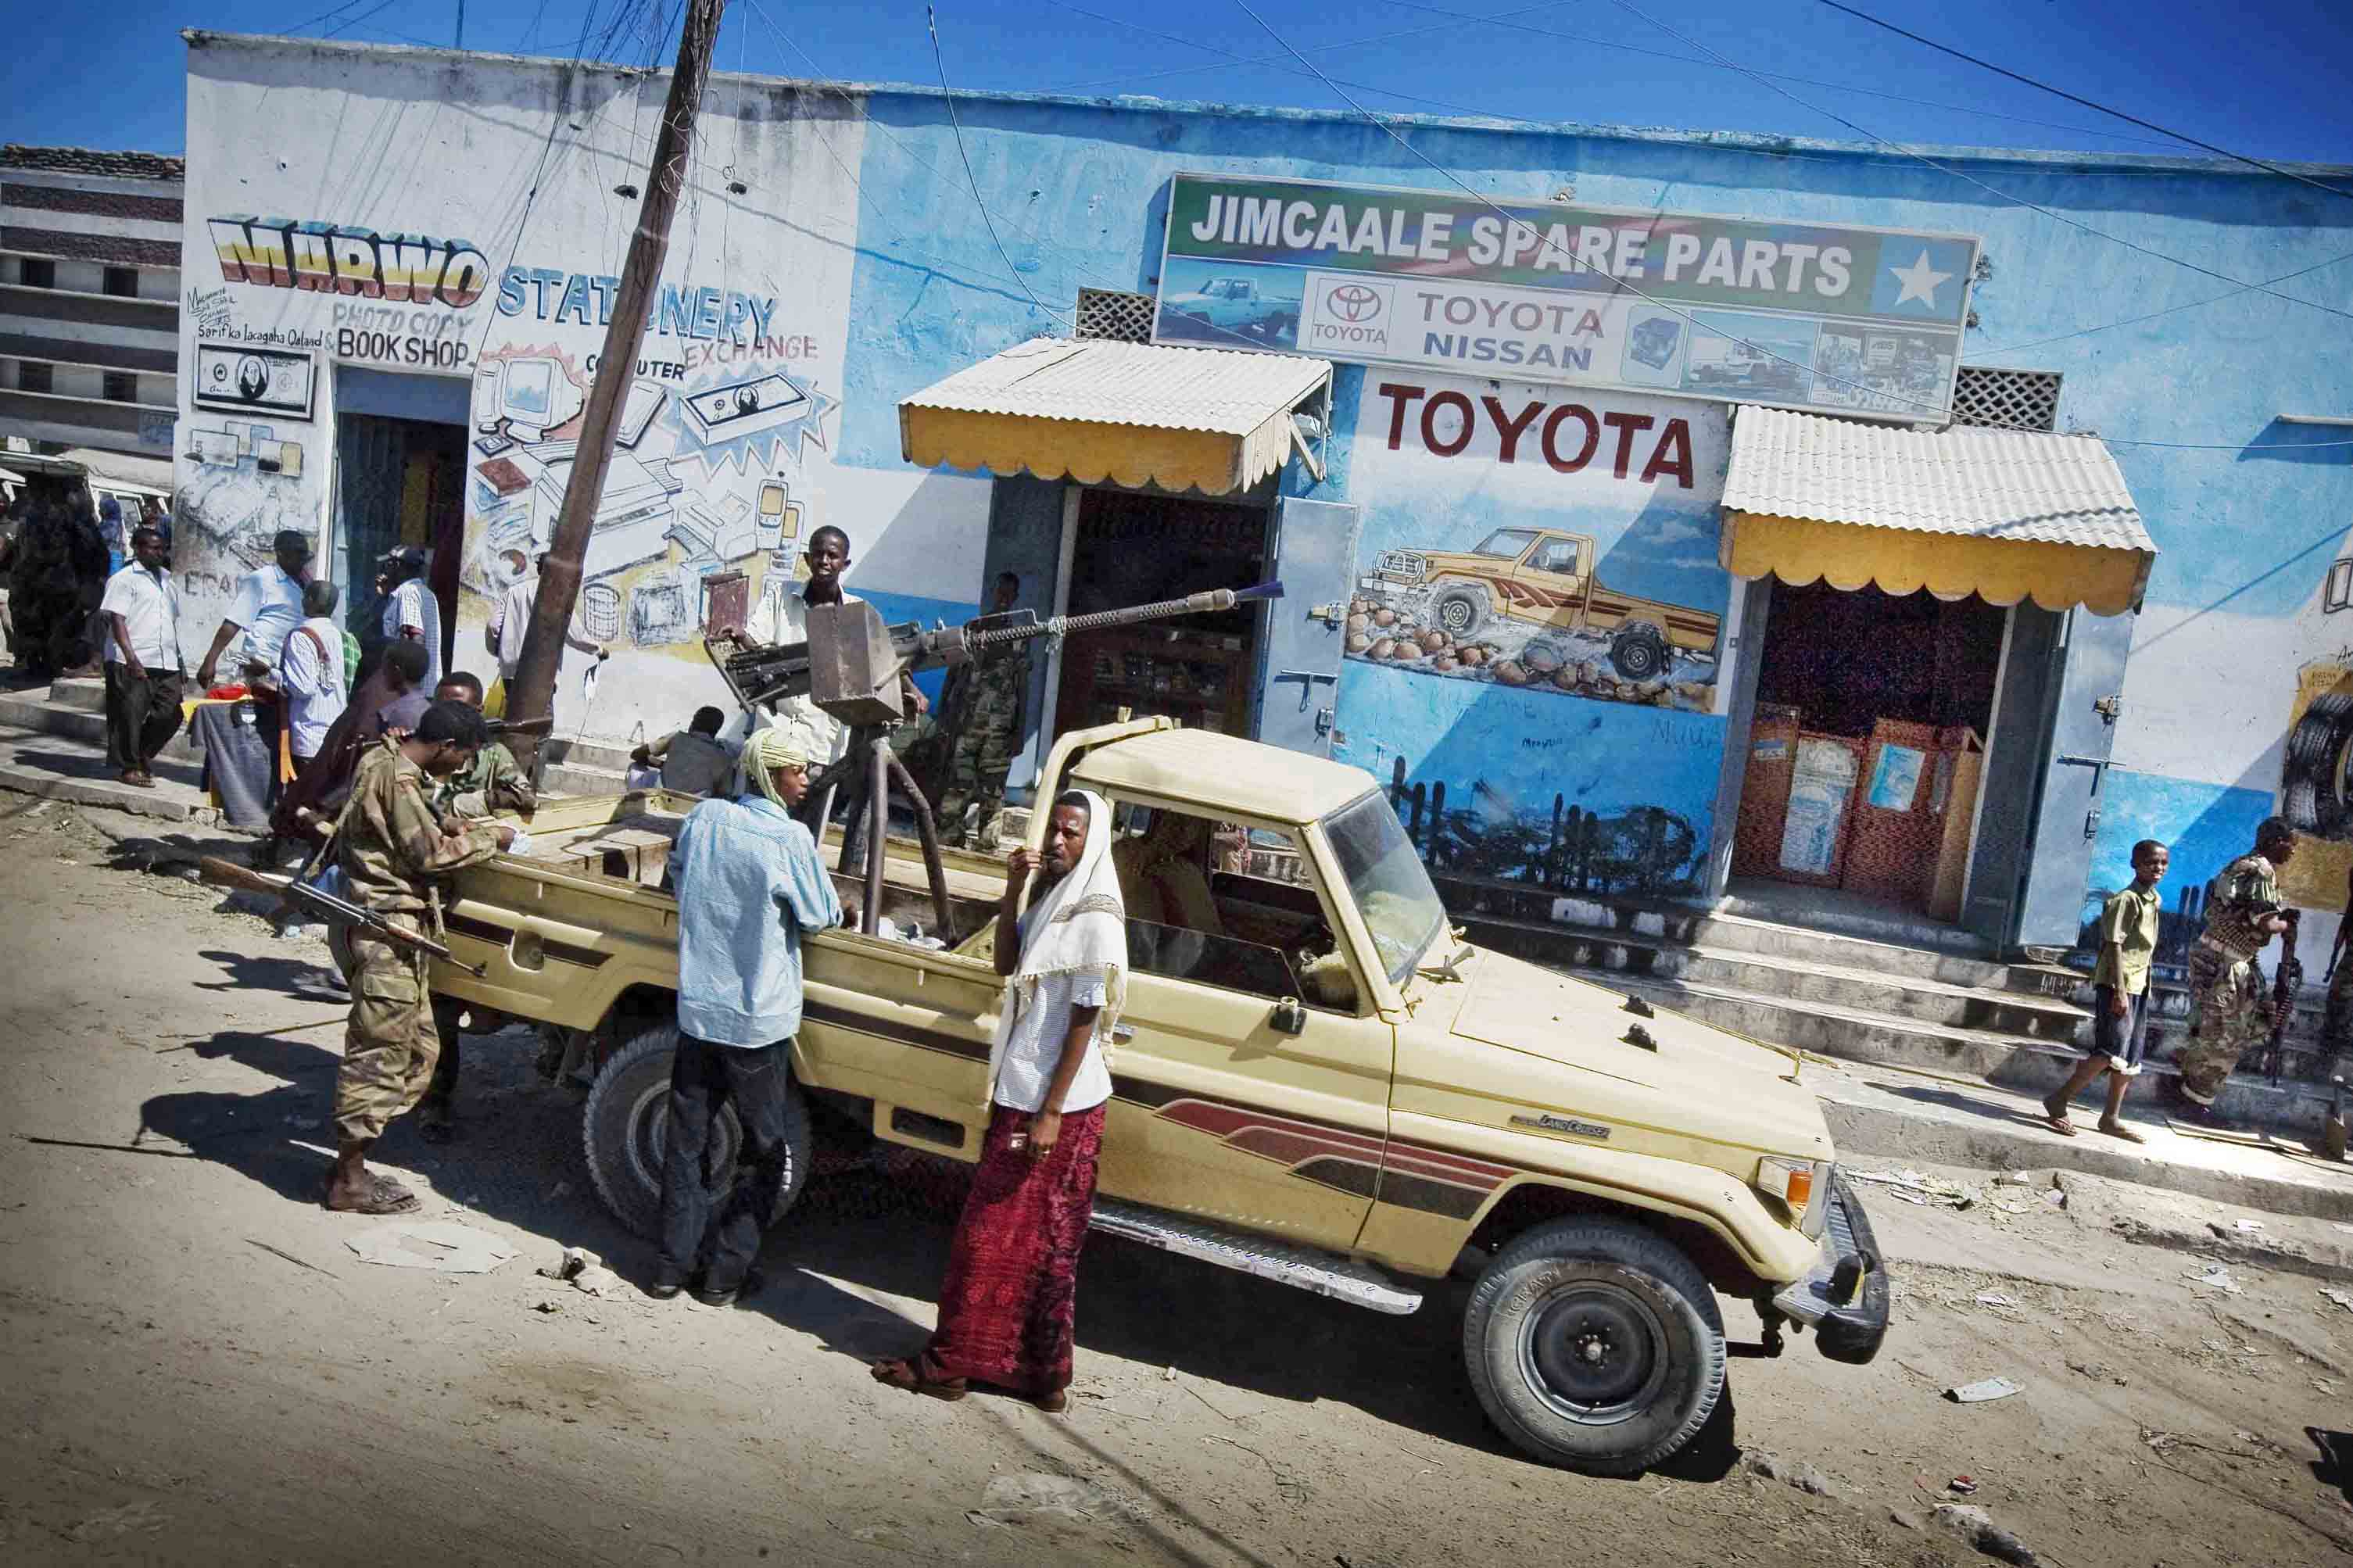 Armed groups stop outside a shop in Mogadishu, Somalia. December 2010